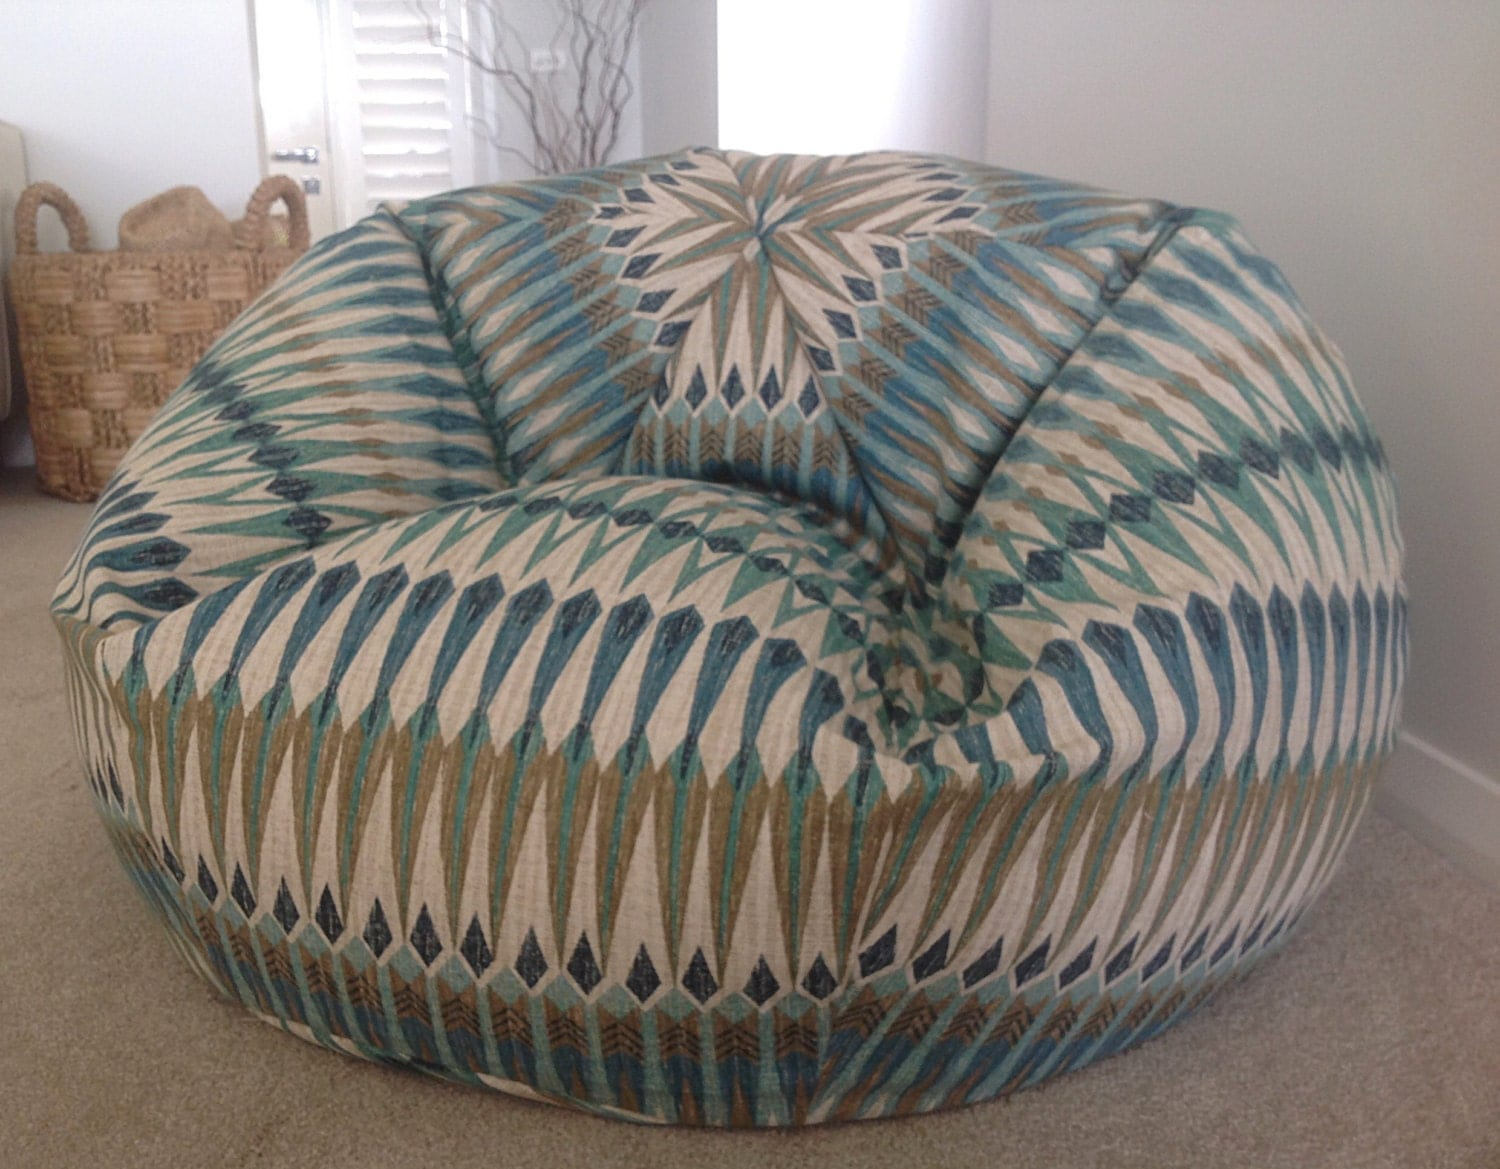 Bean bag chairs for teenage girls - Bean Bag Beanbag Acela Bean Bag Cover Teal Aqua Blue